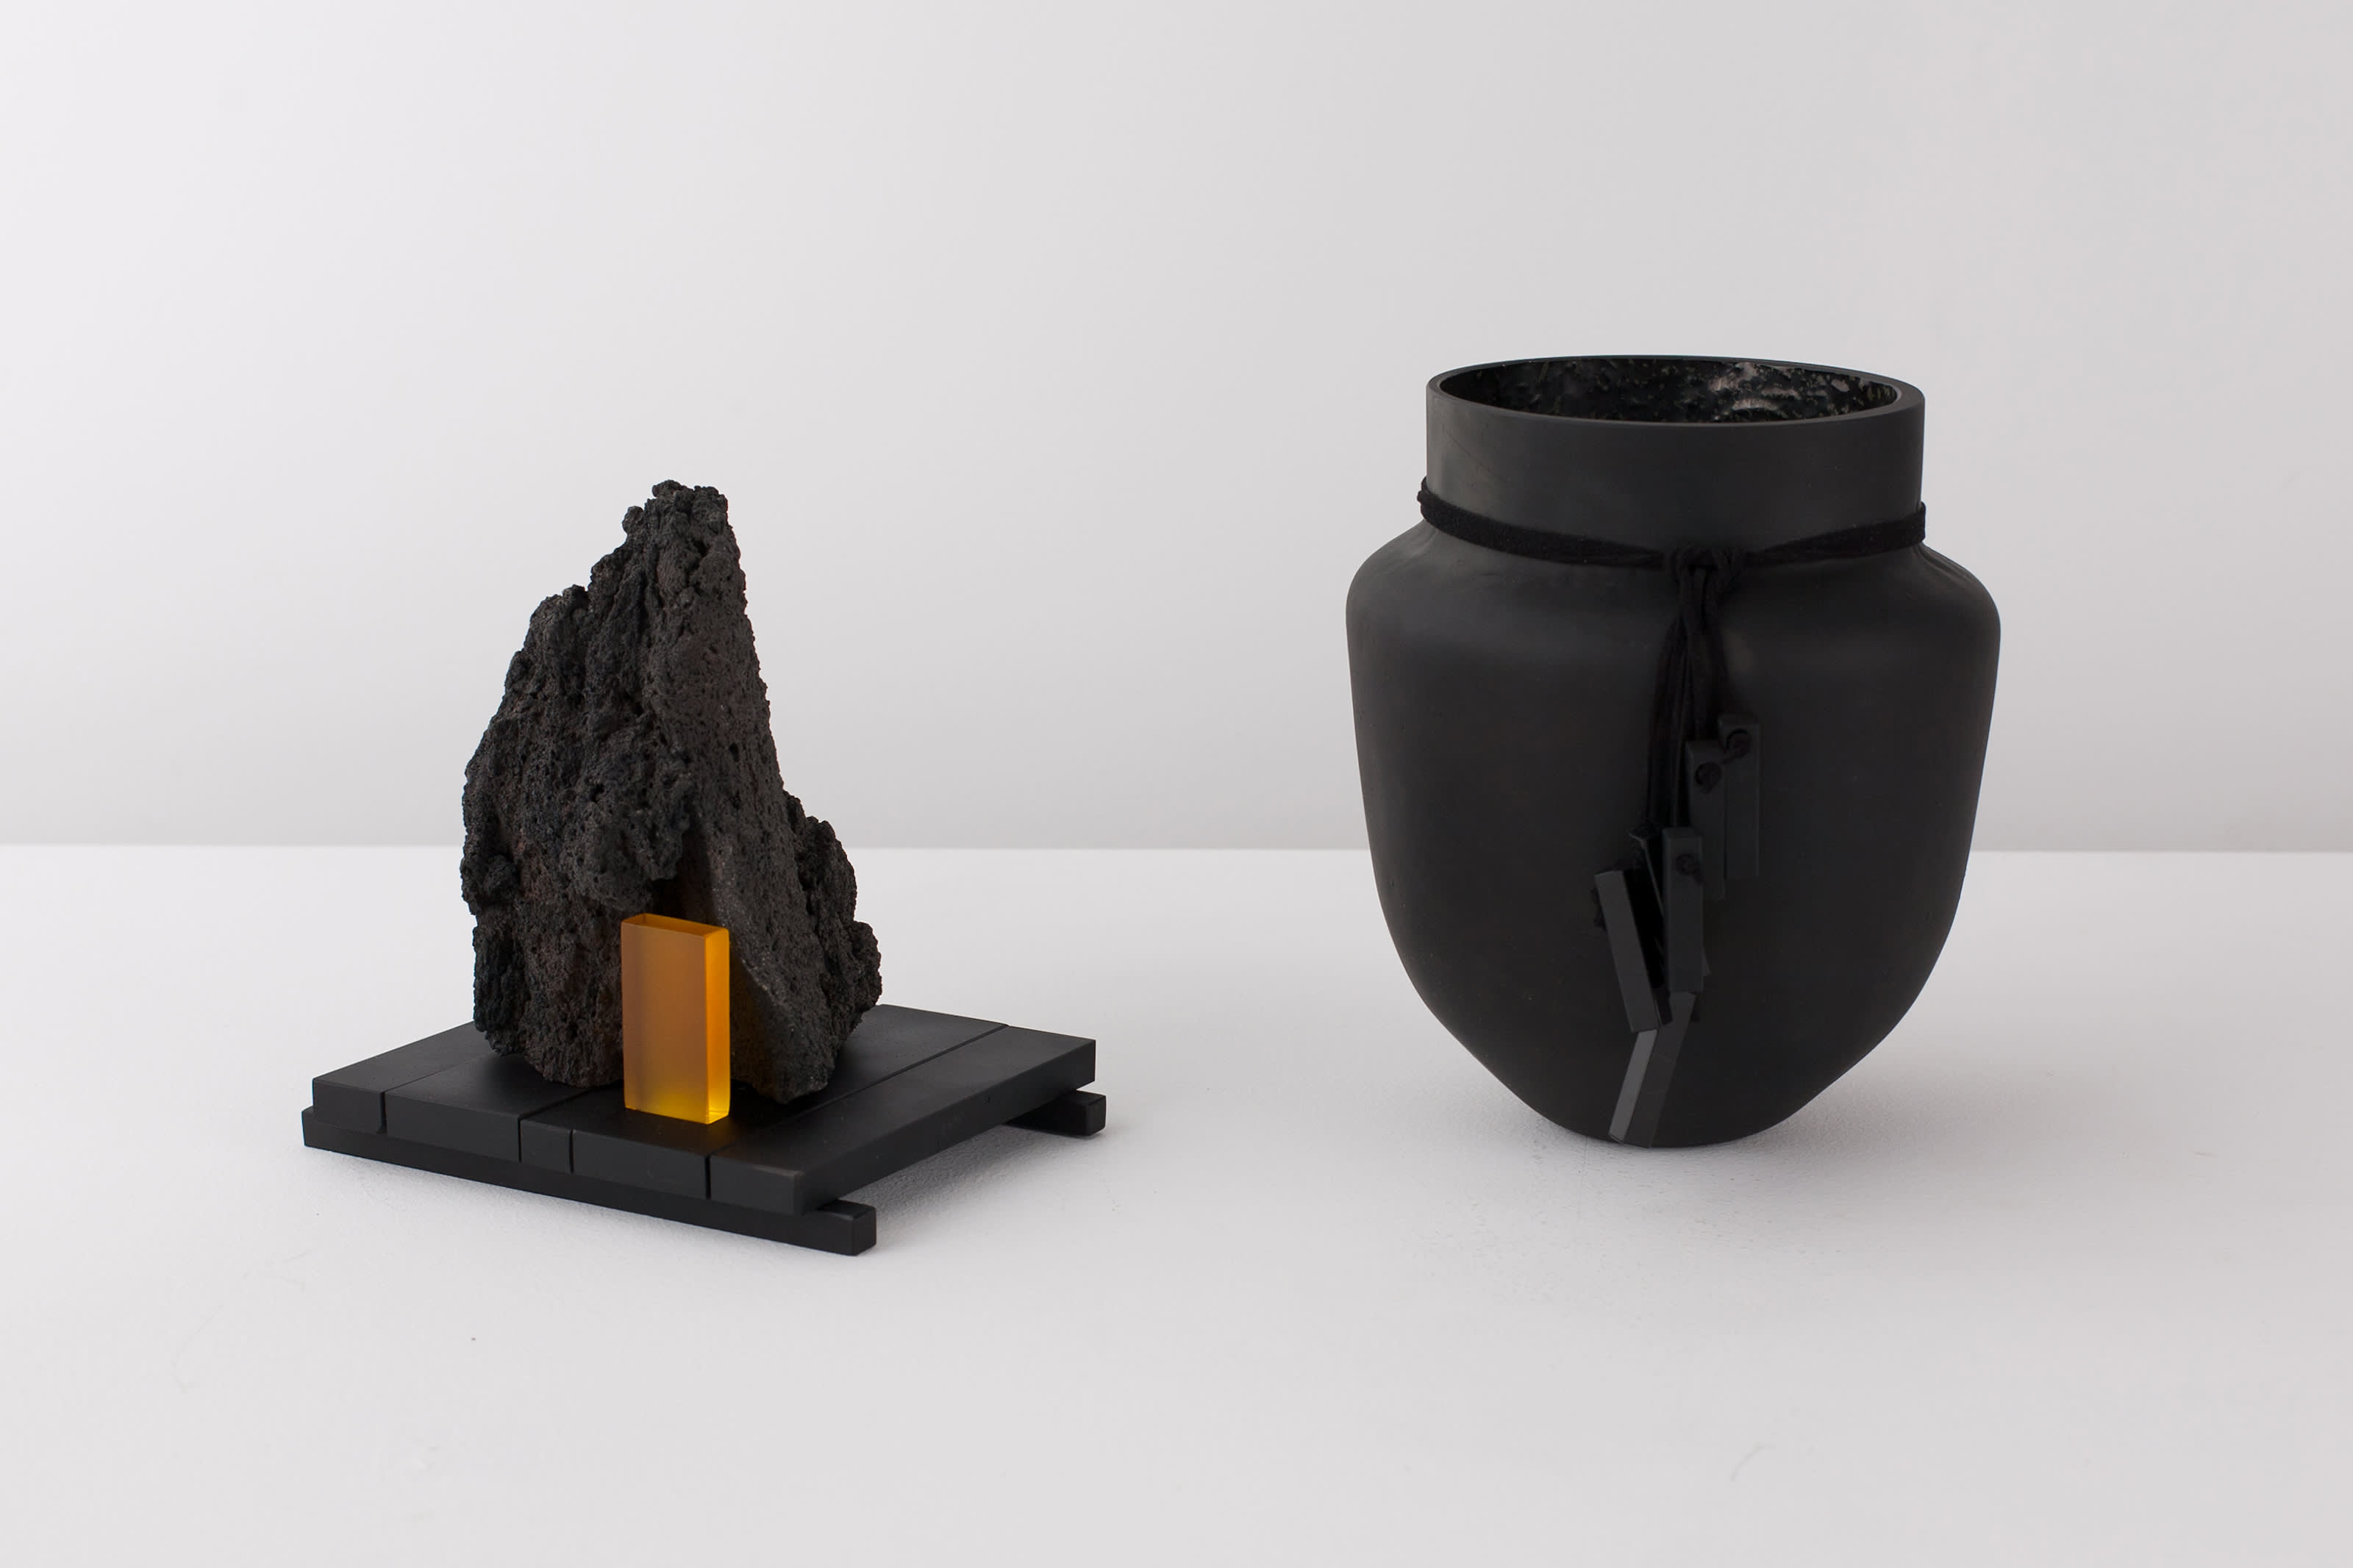 Vessel and sculptural works from the De Natura Fossilium series.